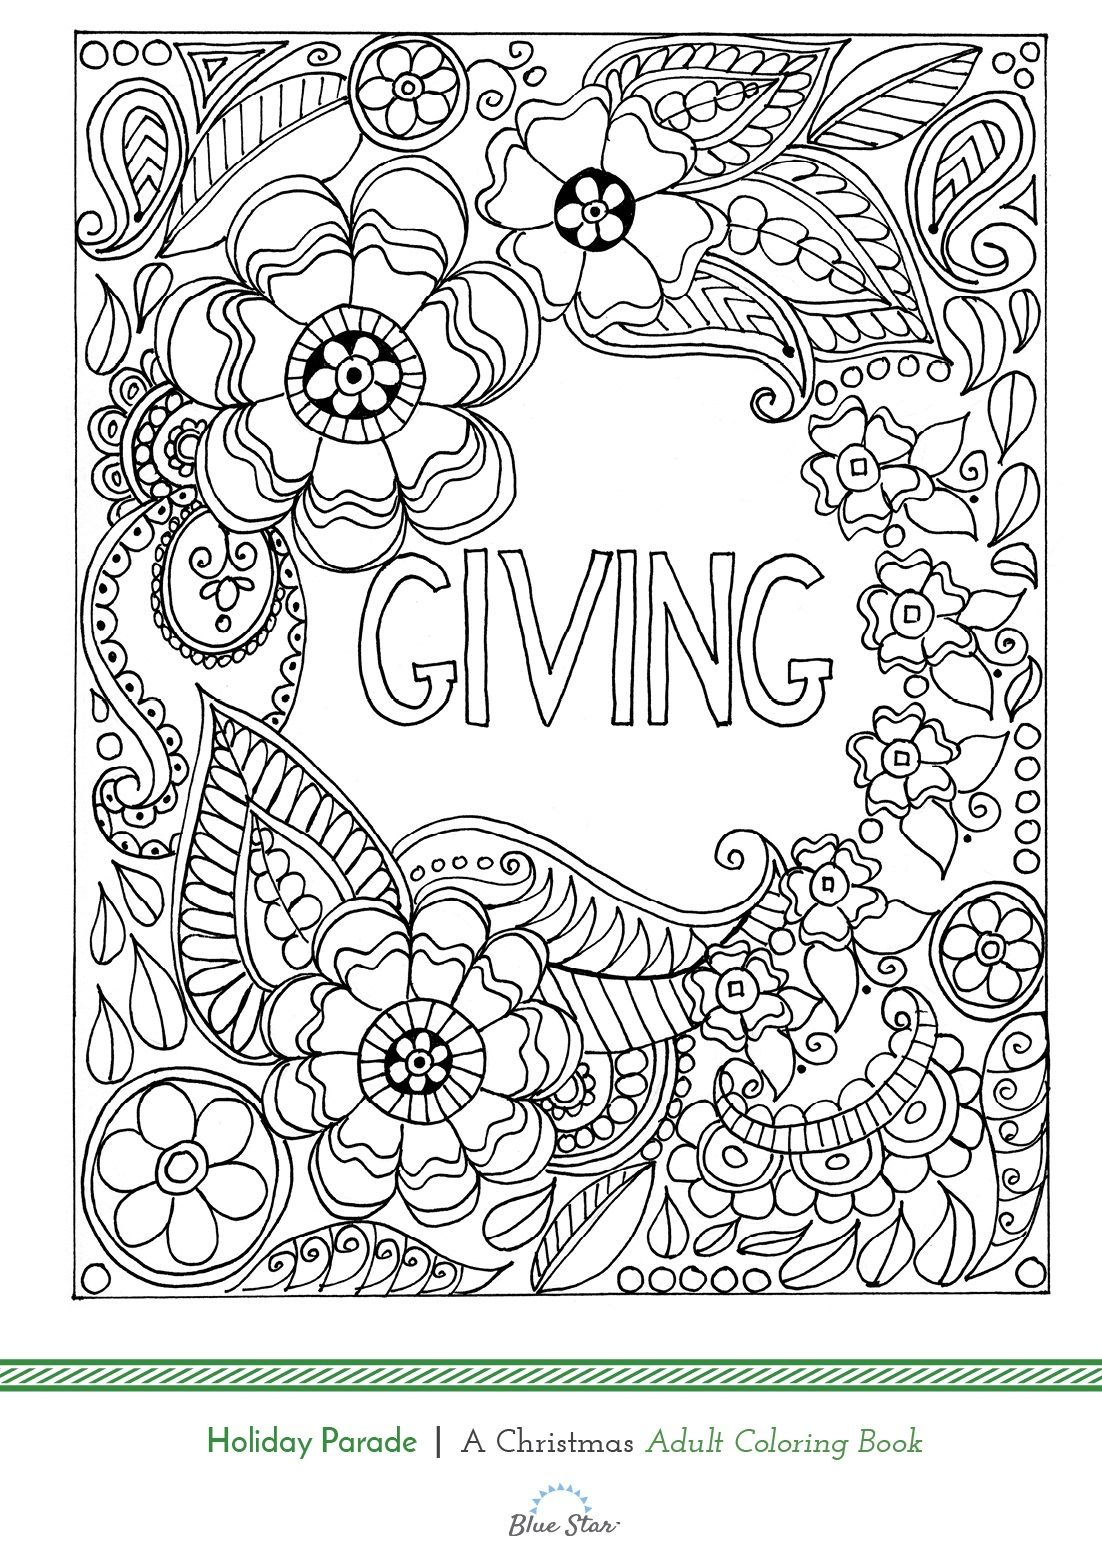 Giving : Another Free Adult Coloring Book Page From Holiday